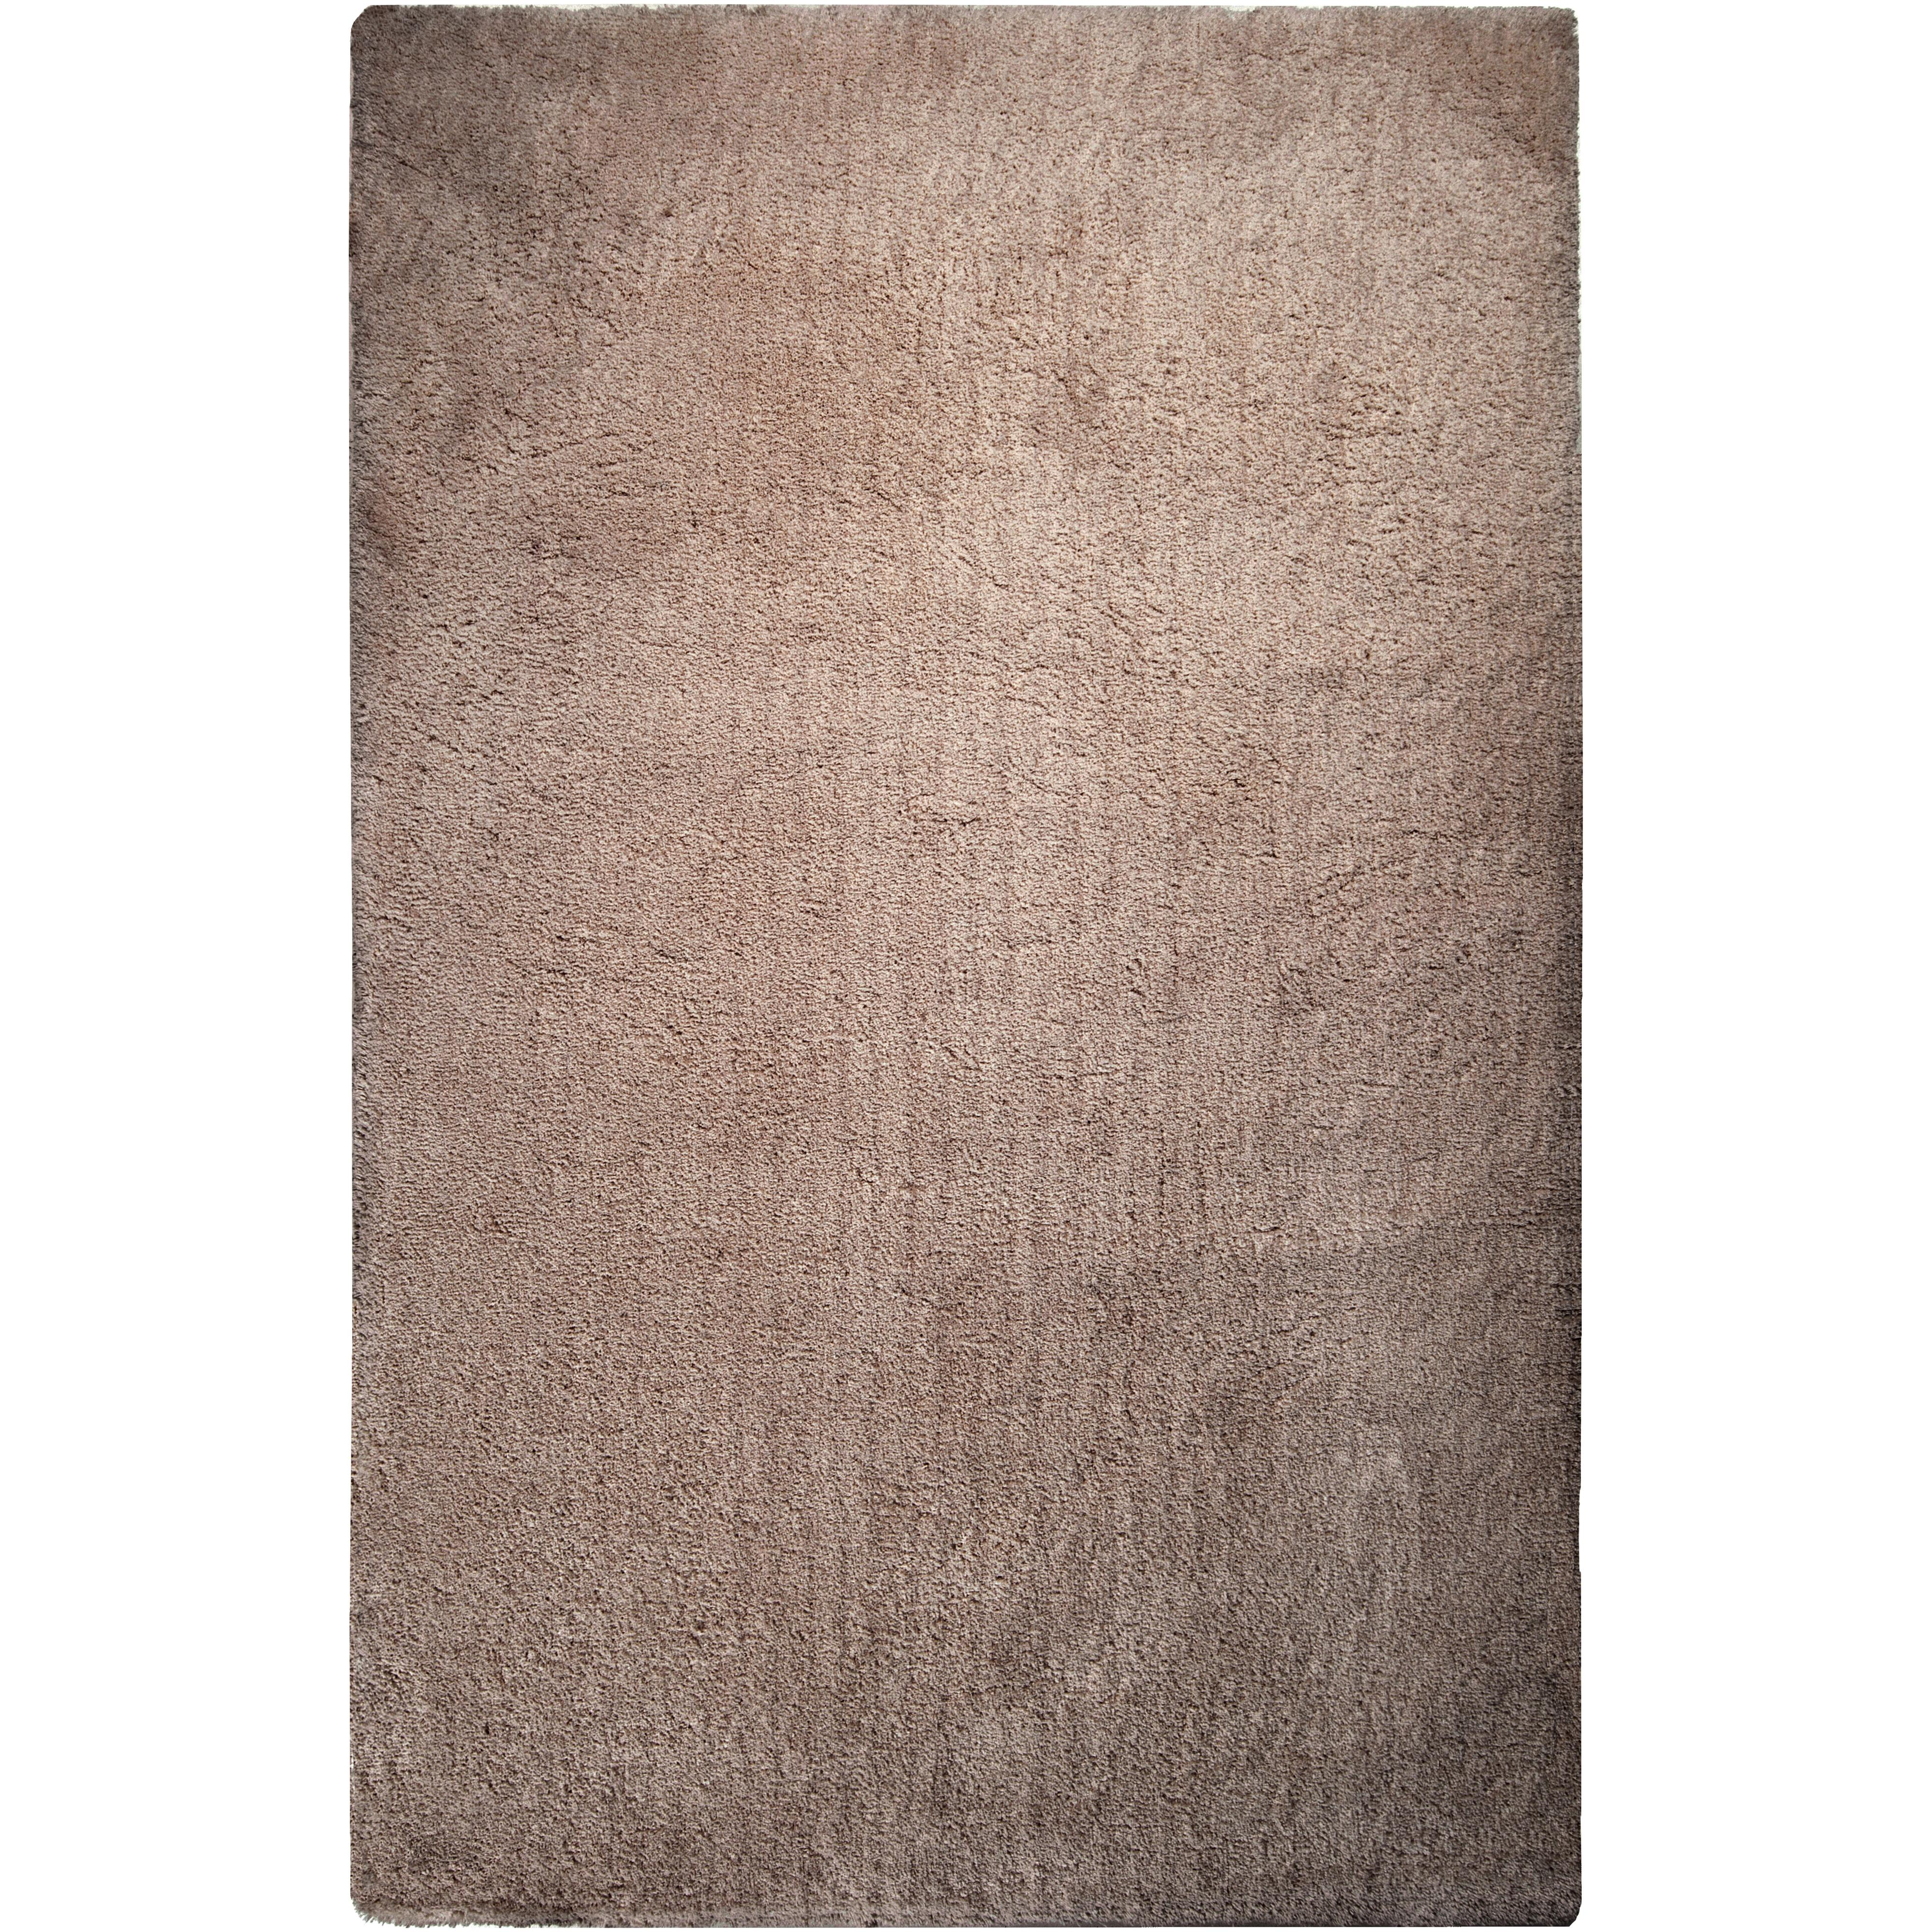 Surya Rugs Heaven 3' x 5' - Item Number: HEA8001-35